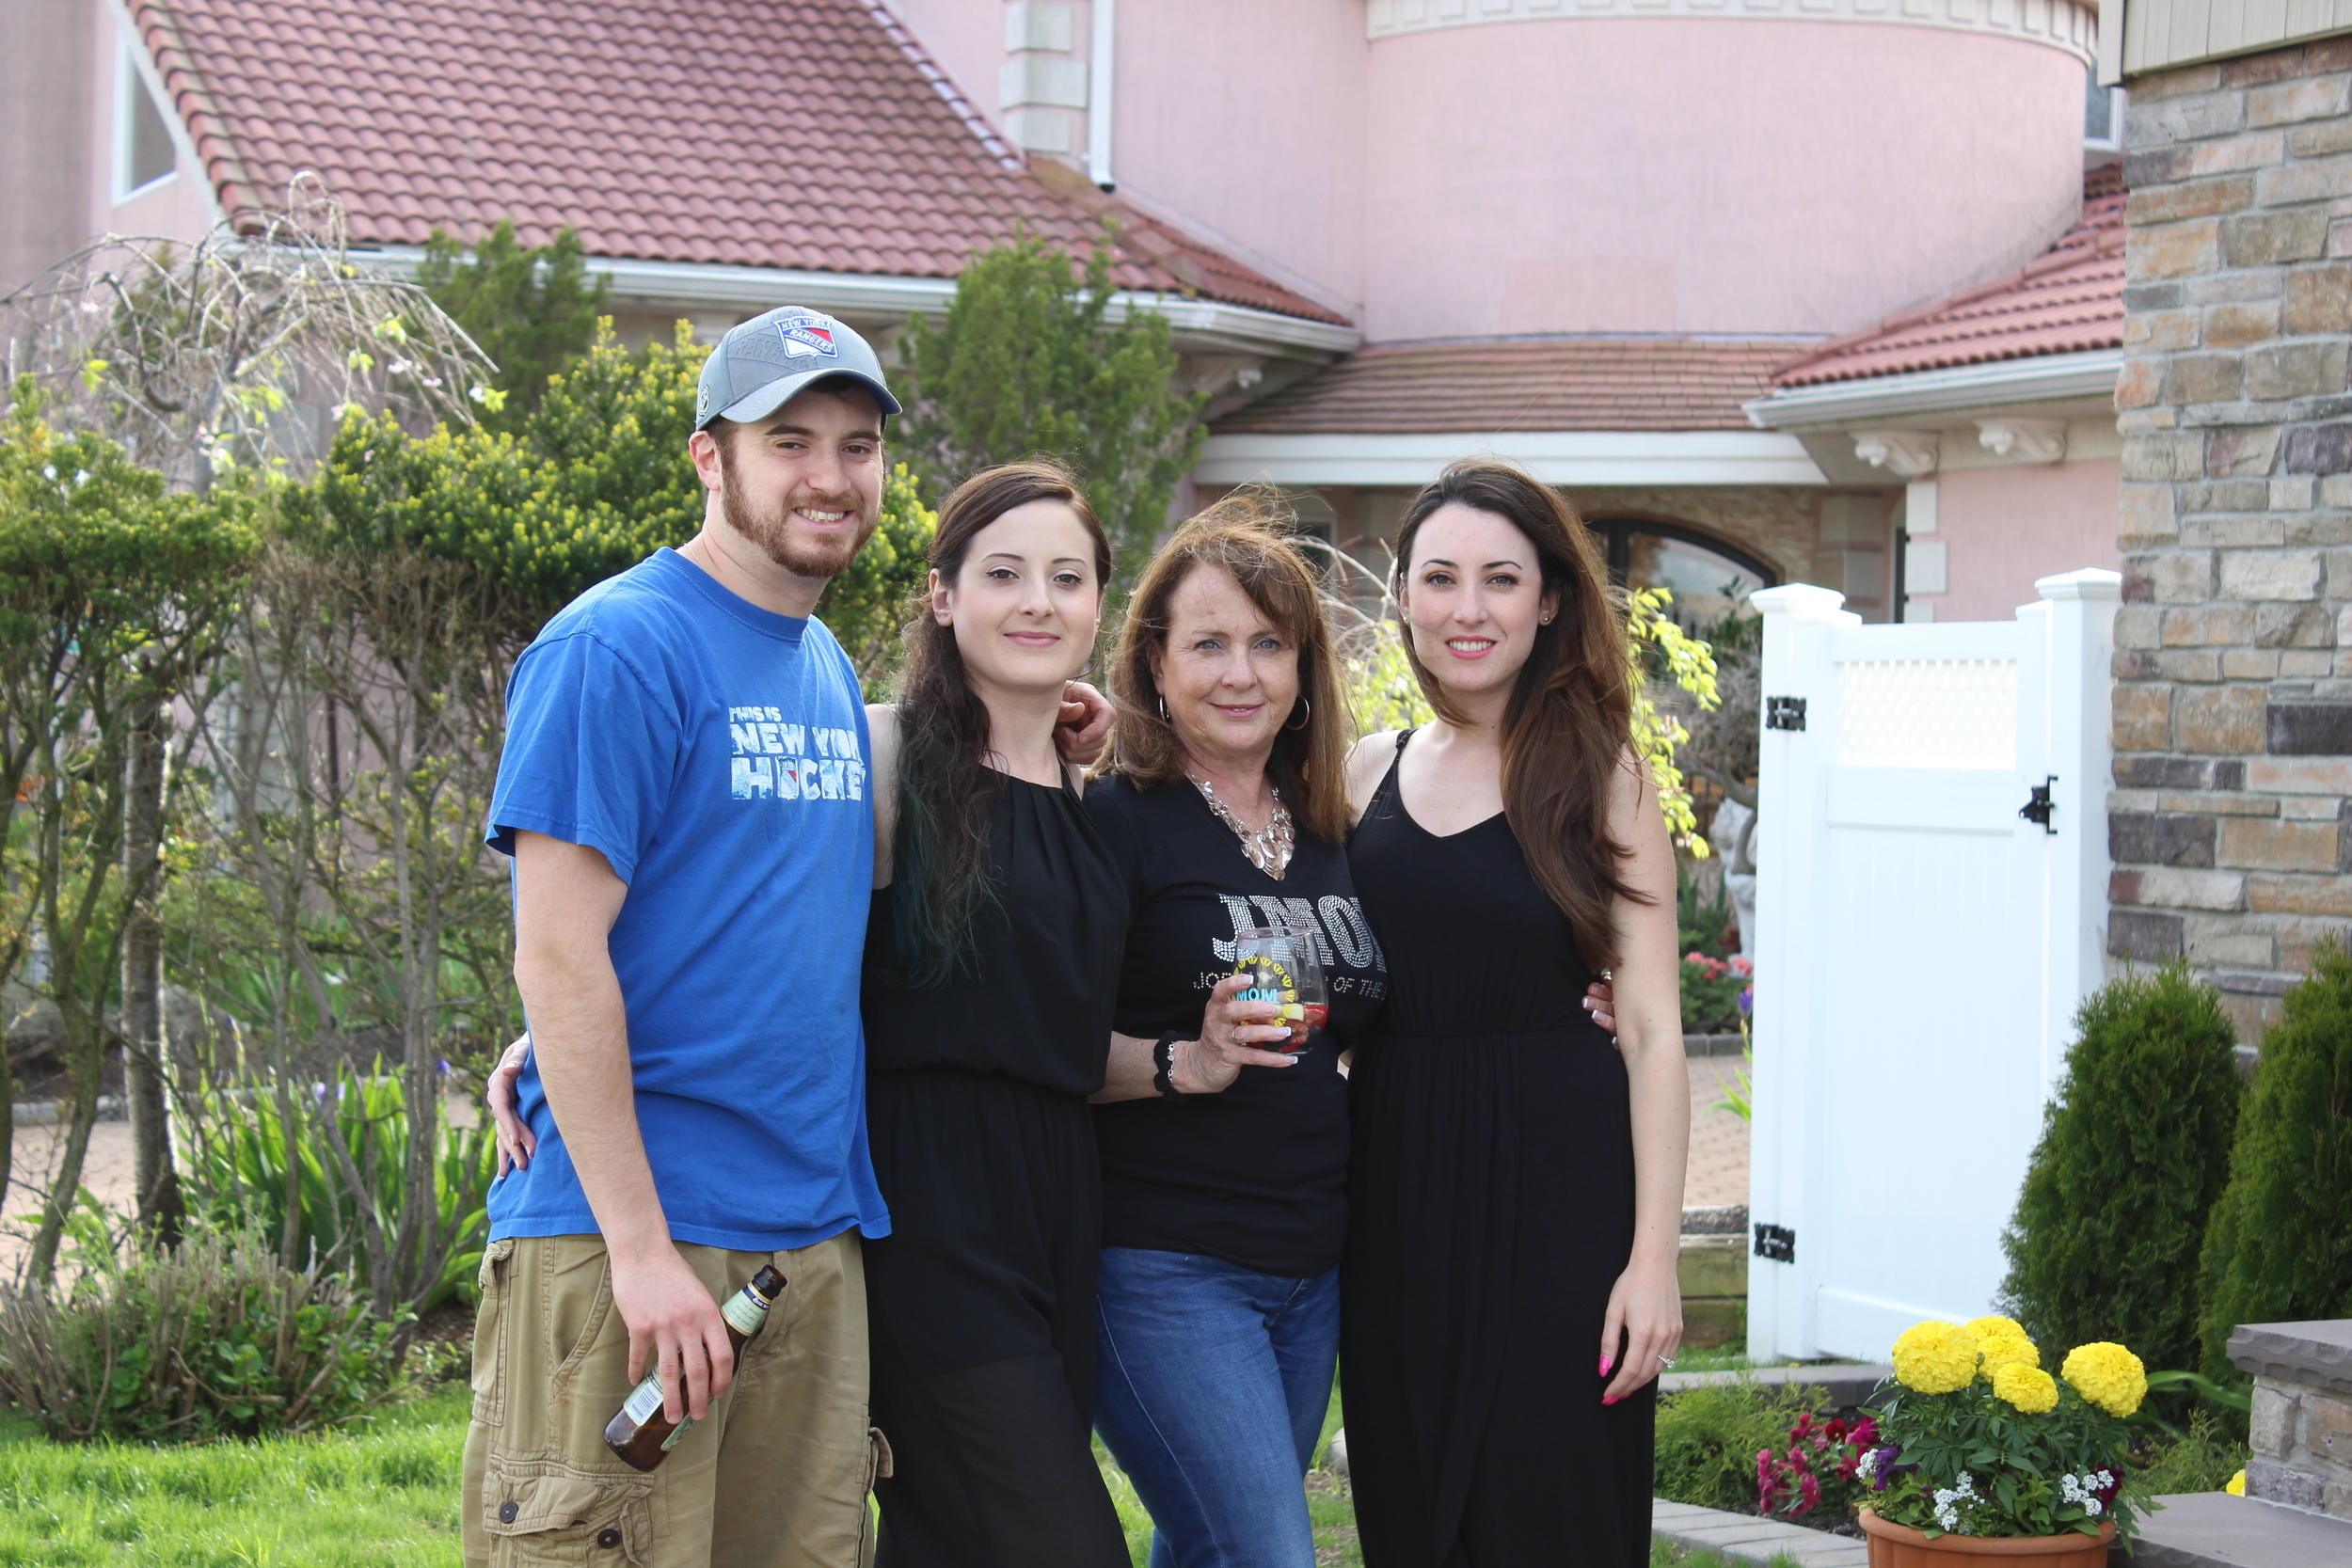 From left to right, my brother Anthony, my sister Laura, my mom, and me